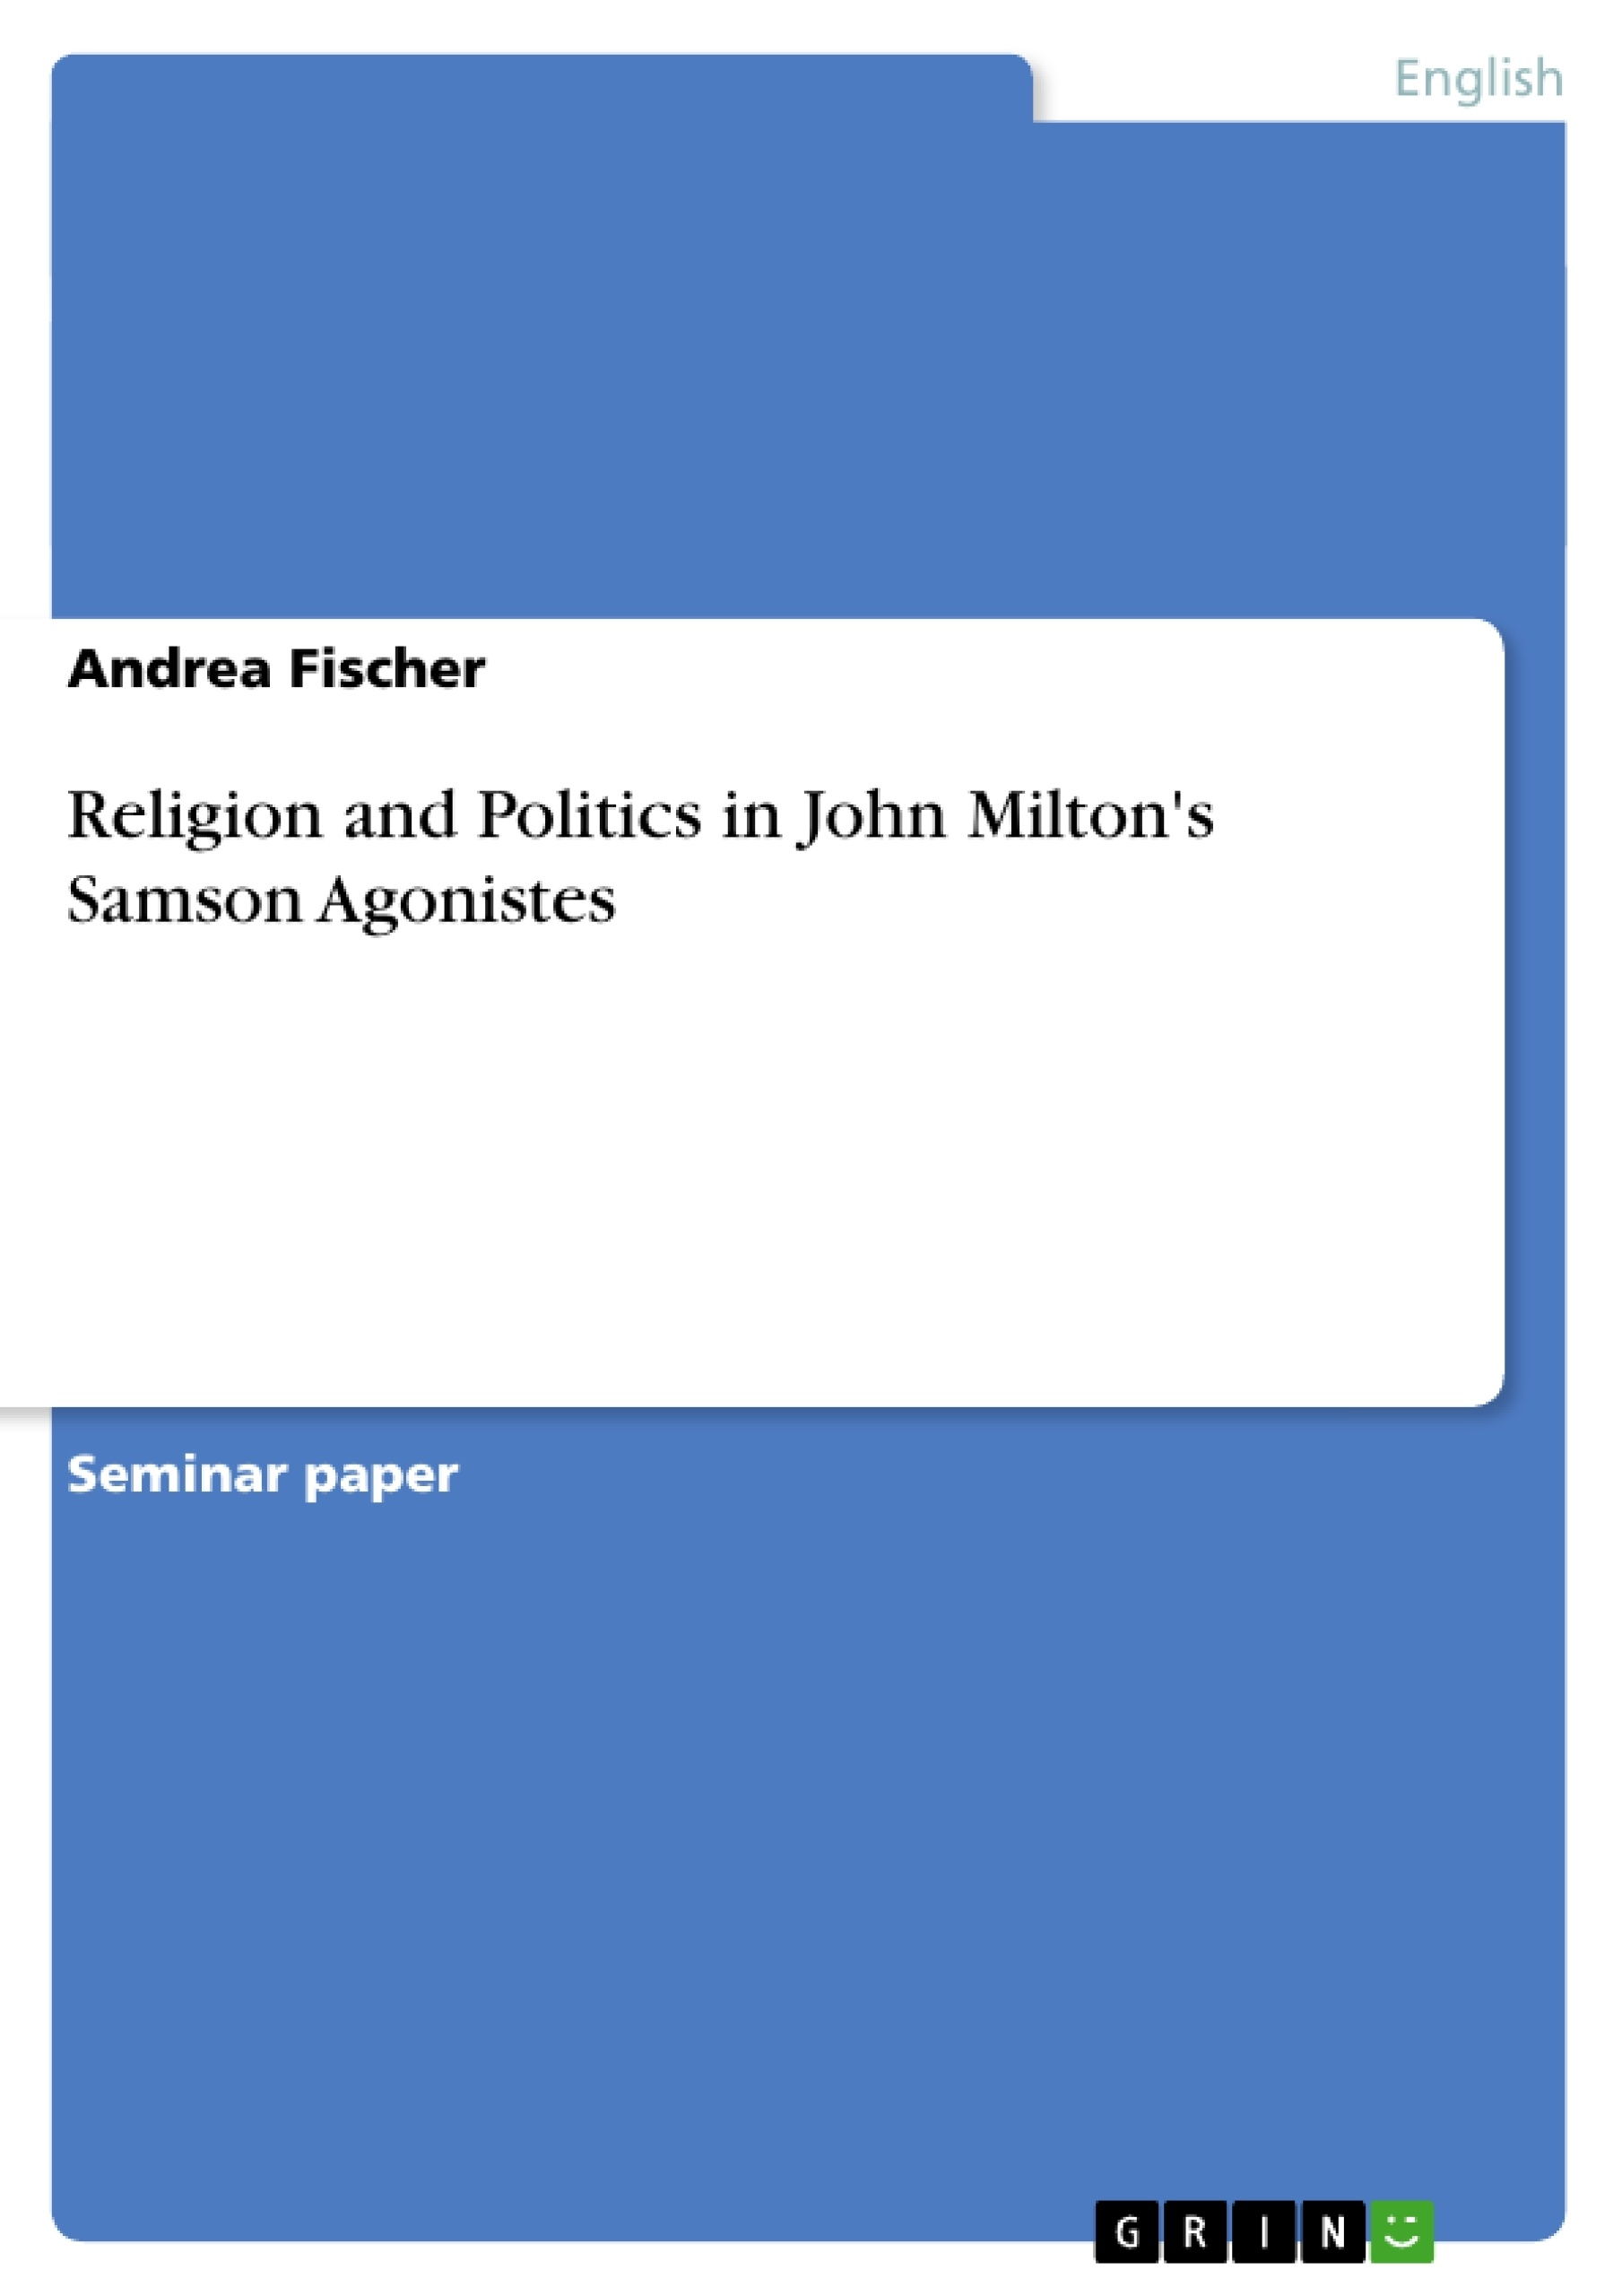 religion and politics in john milton s samson agonistes publish religion and politics in john milton s samson agonistes publish your master s thesis bachelor s thesis essay or term paper